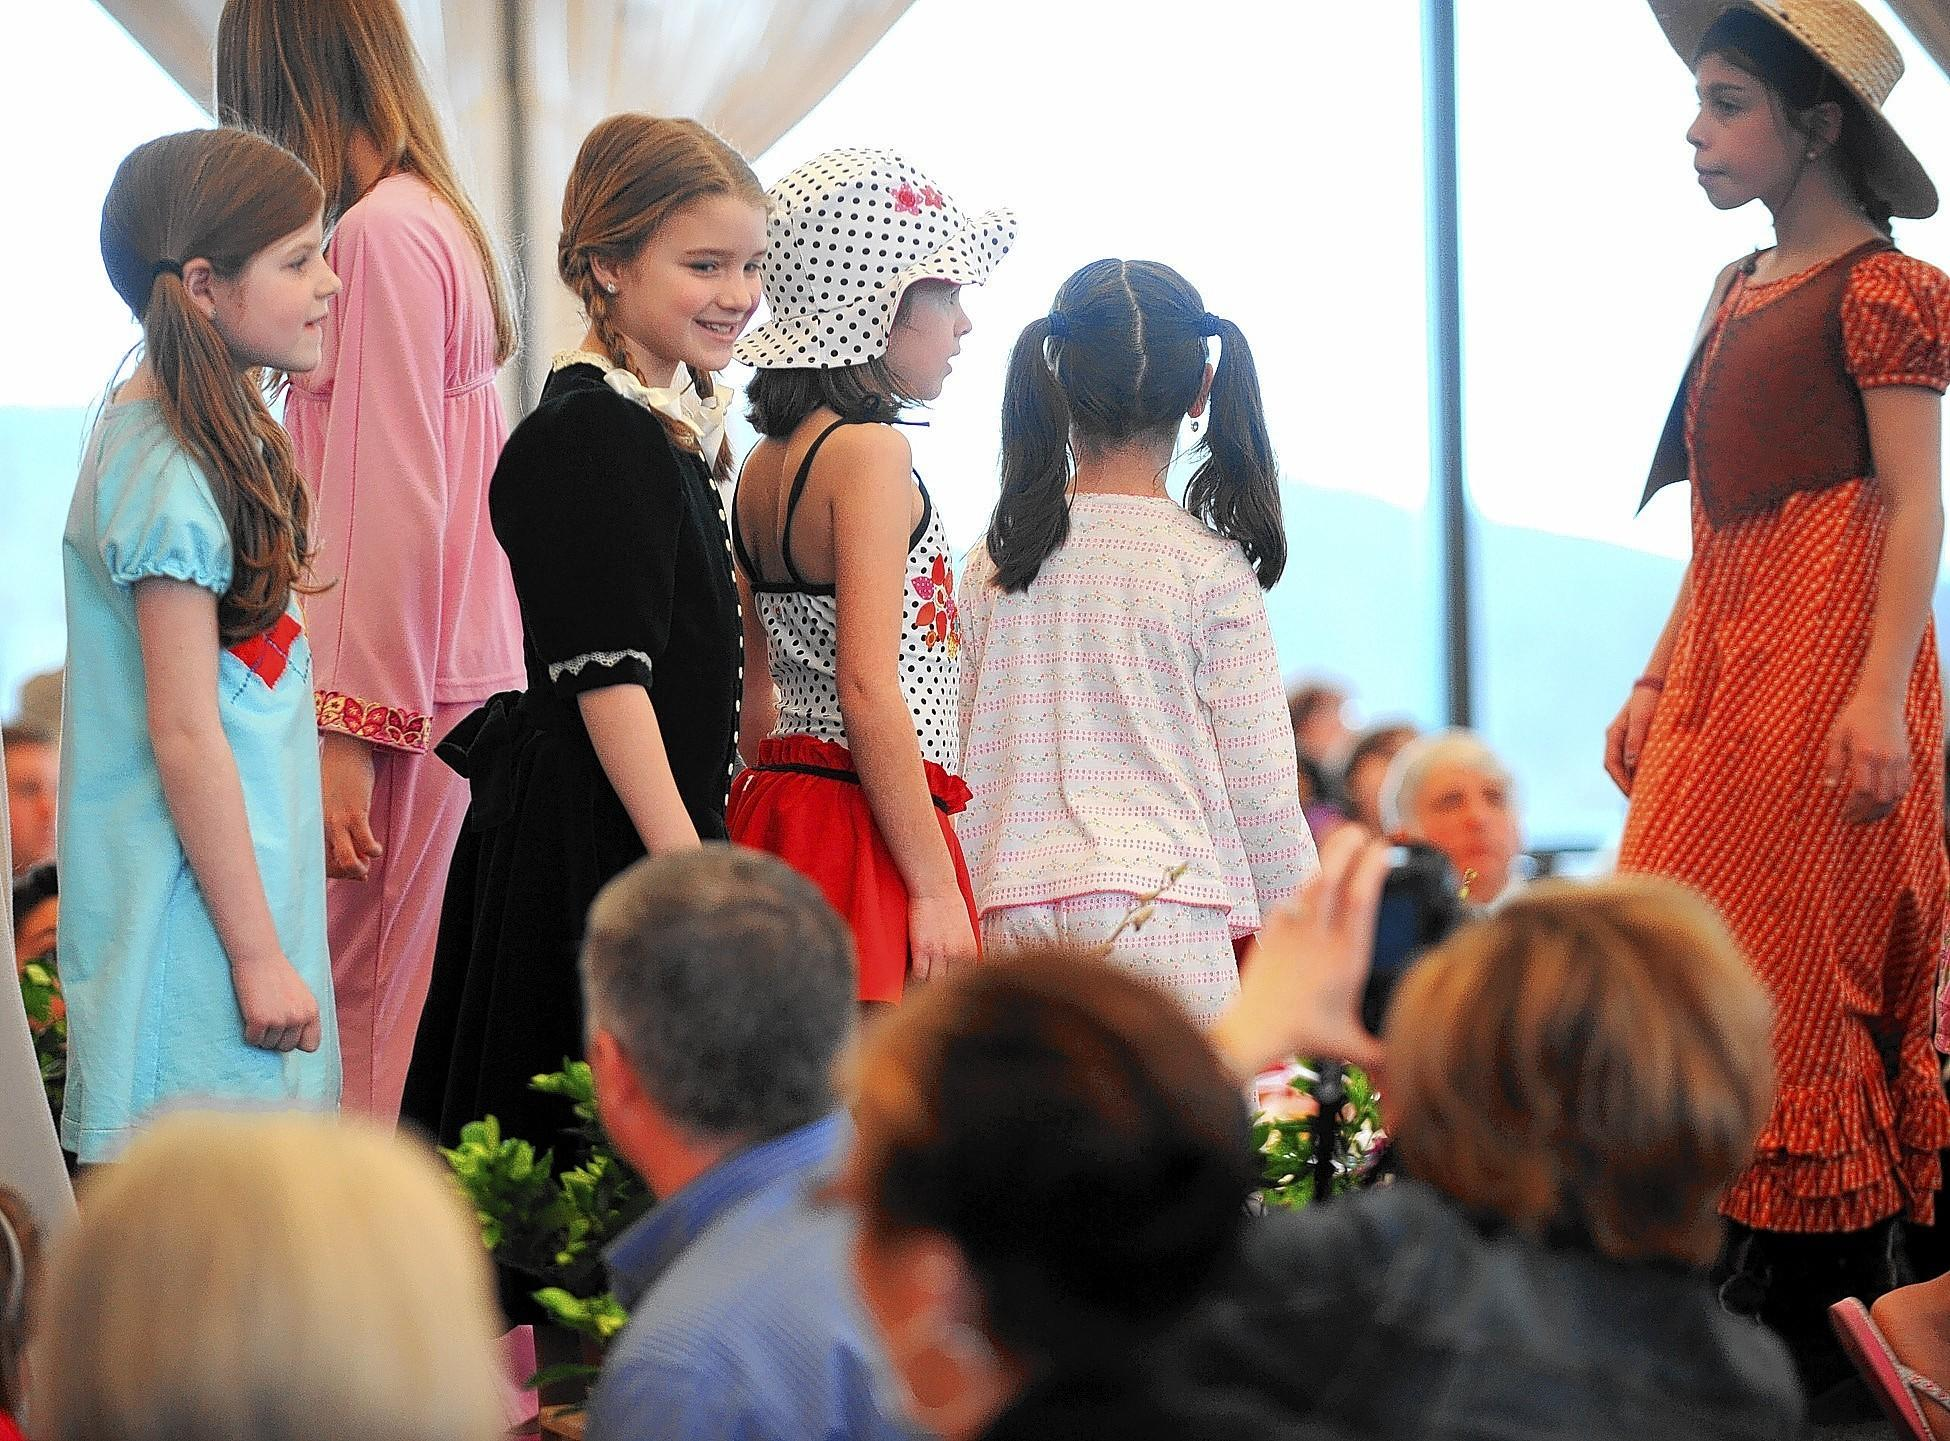 Check out the latest fashions at the Junior League of the Lehigh Valley's American Girl Fashion Show at Lehigh University's Iacocca Hall on March 8 and 9.